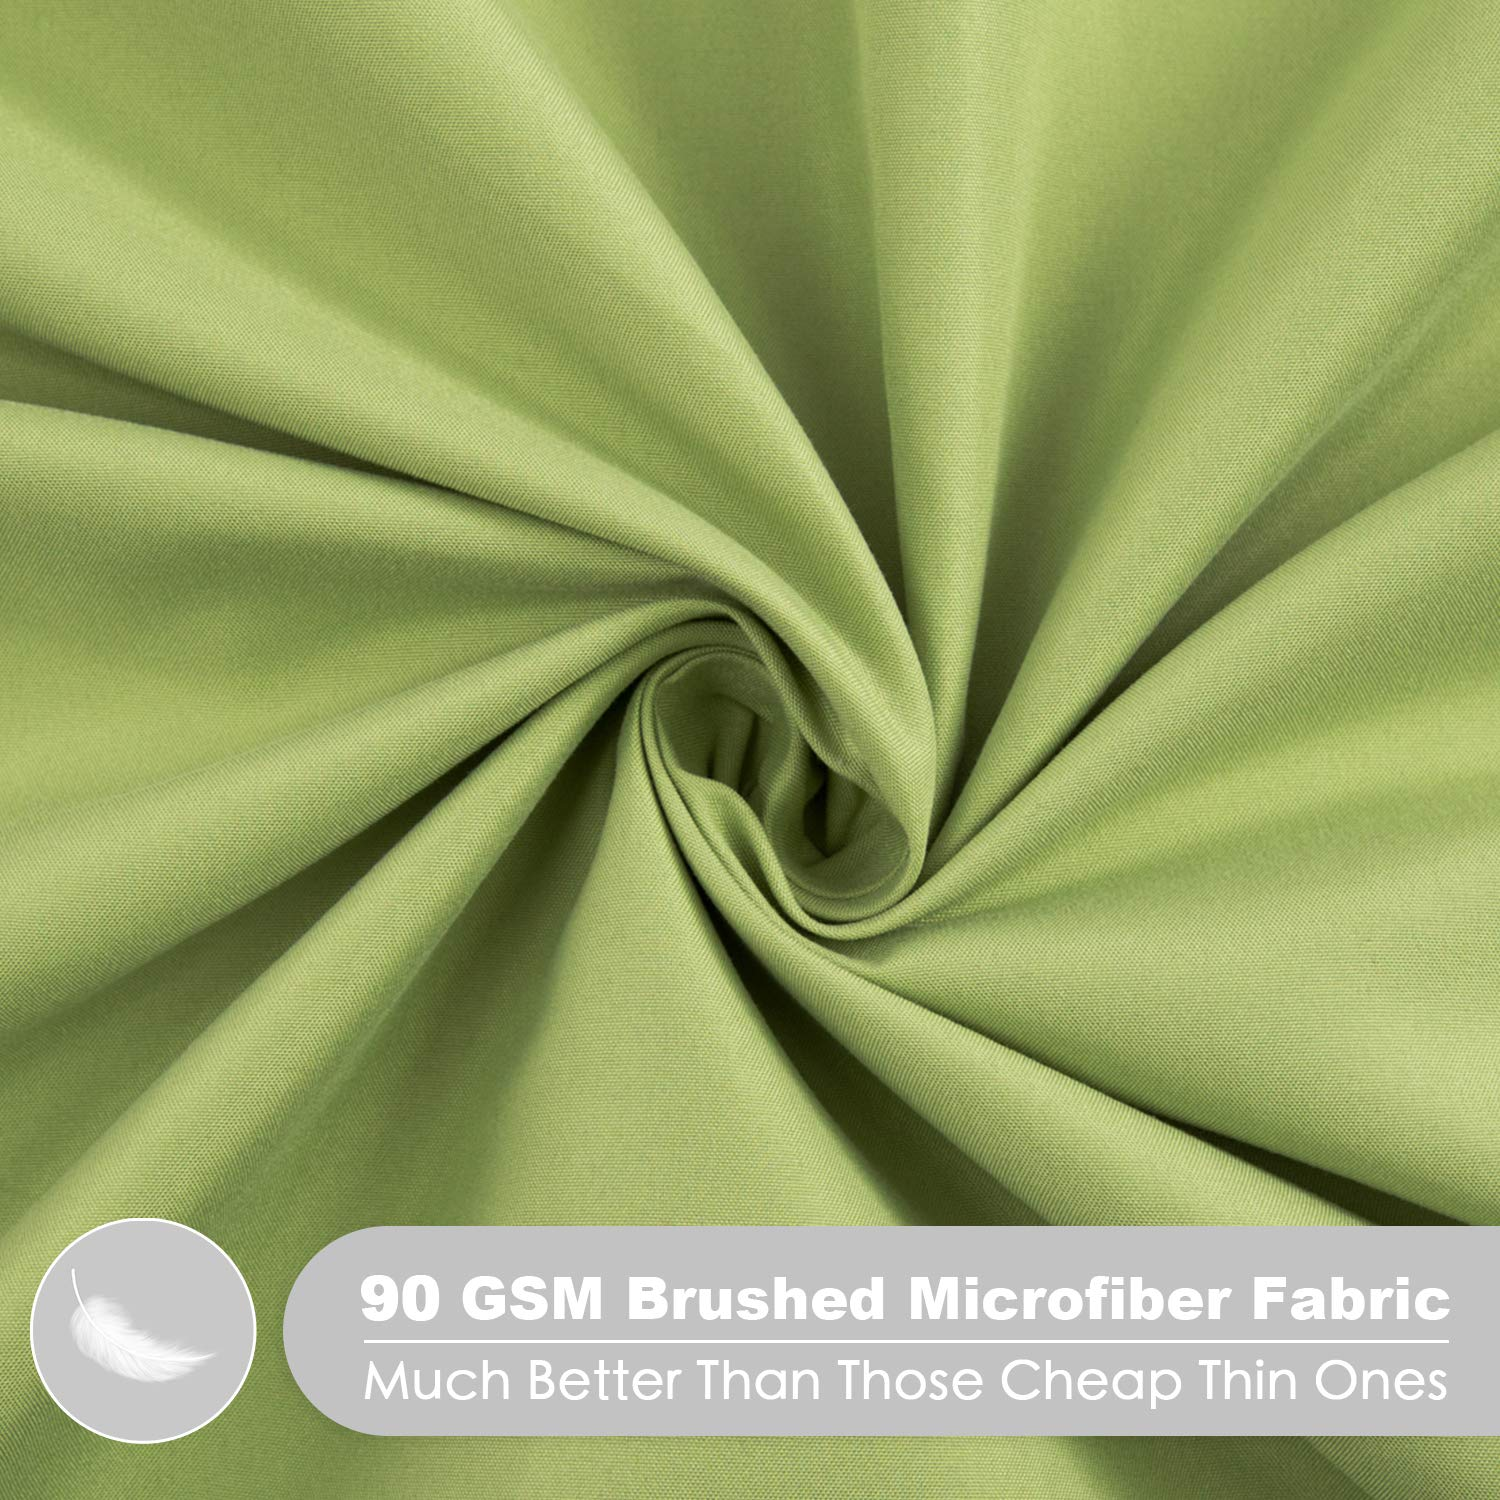 Silky Soft Microfiber Crib Sheet 28 x 52in - Pea Green